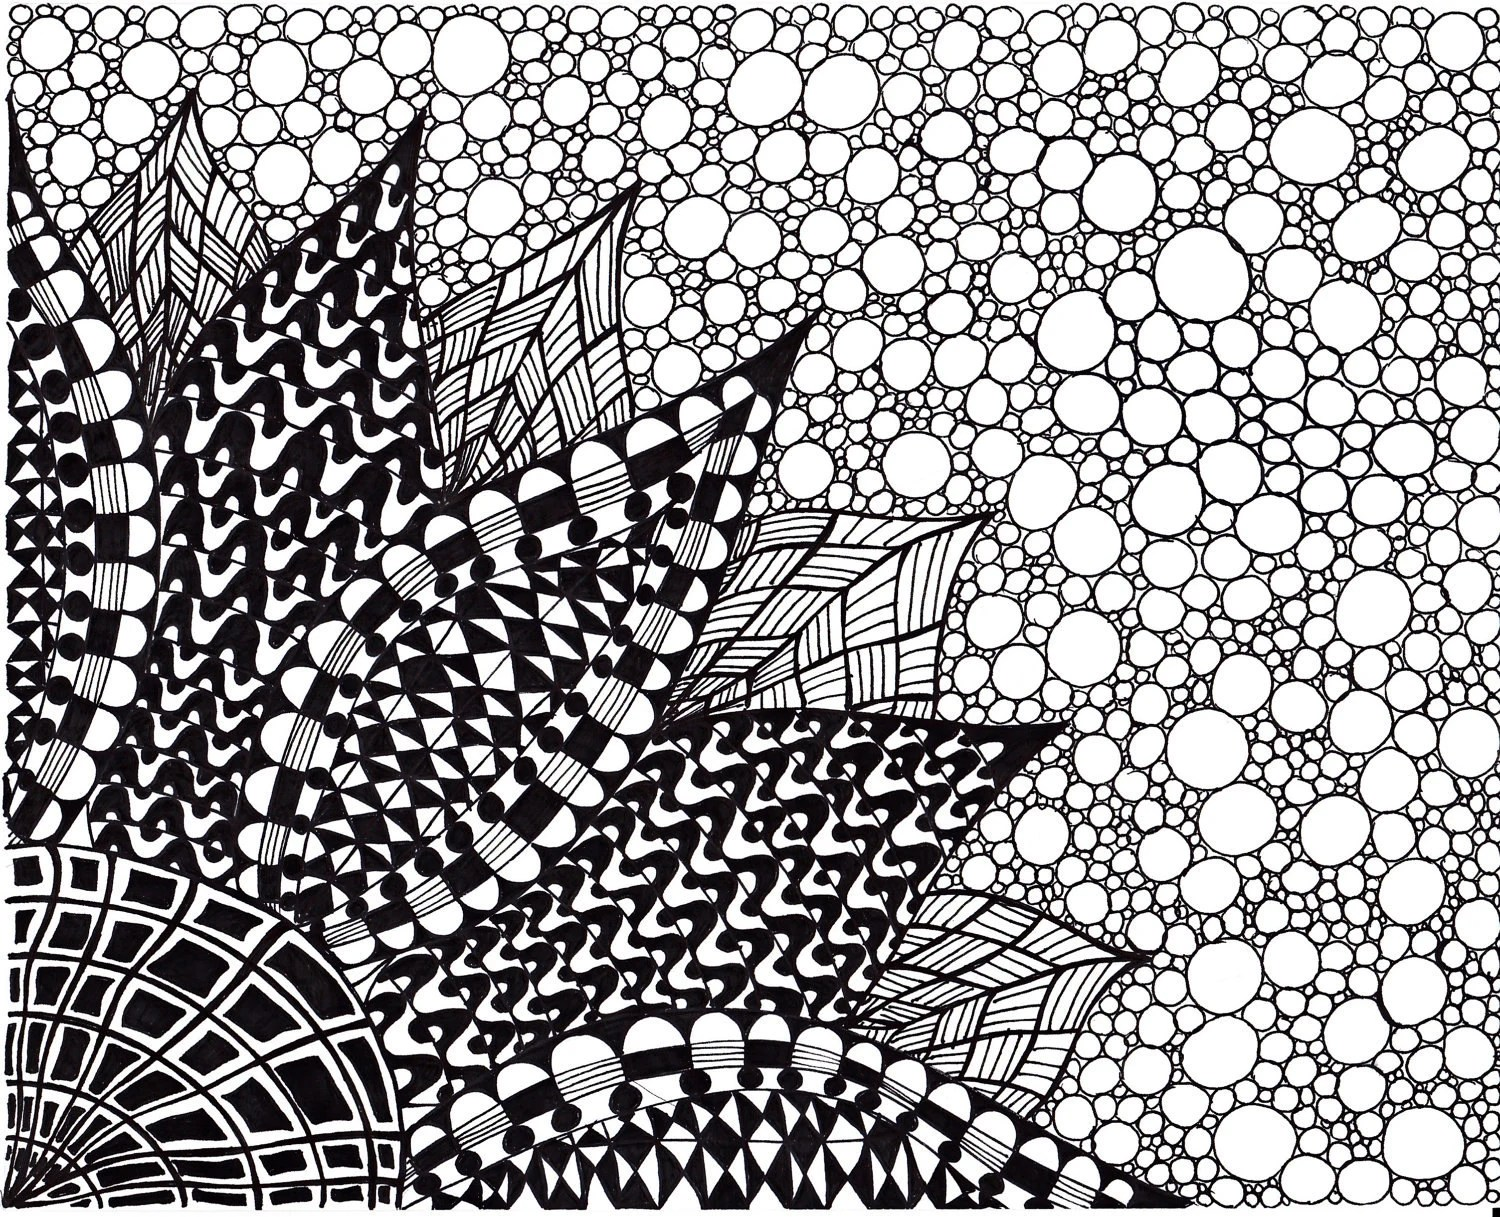 Art Print Black And White Abstract Ink Drawing Zentangle Inspired Art Flower Black And